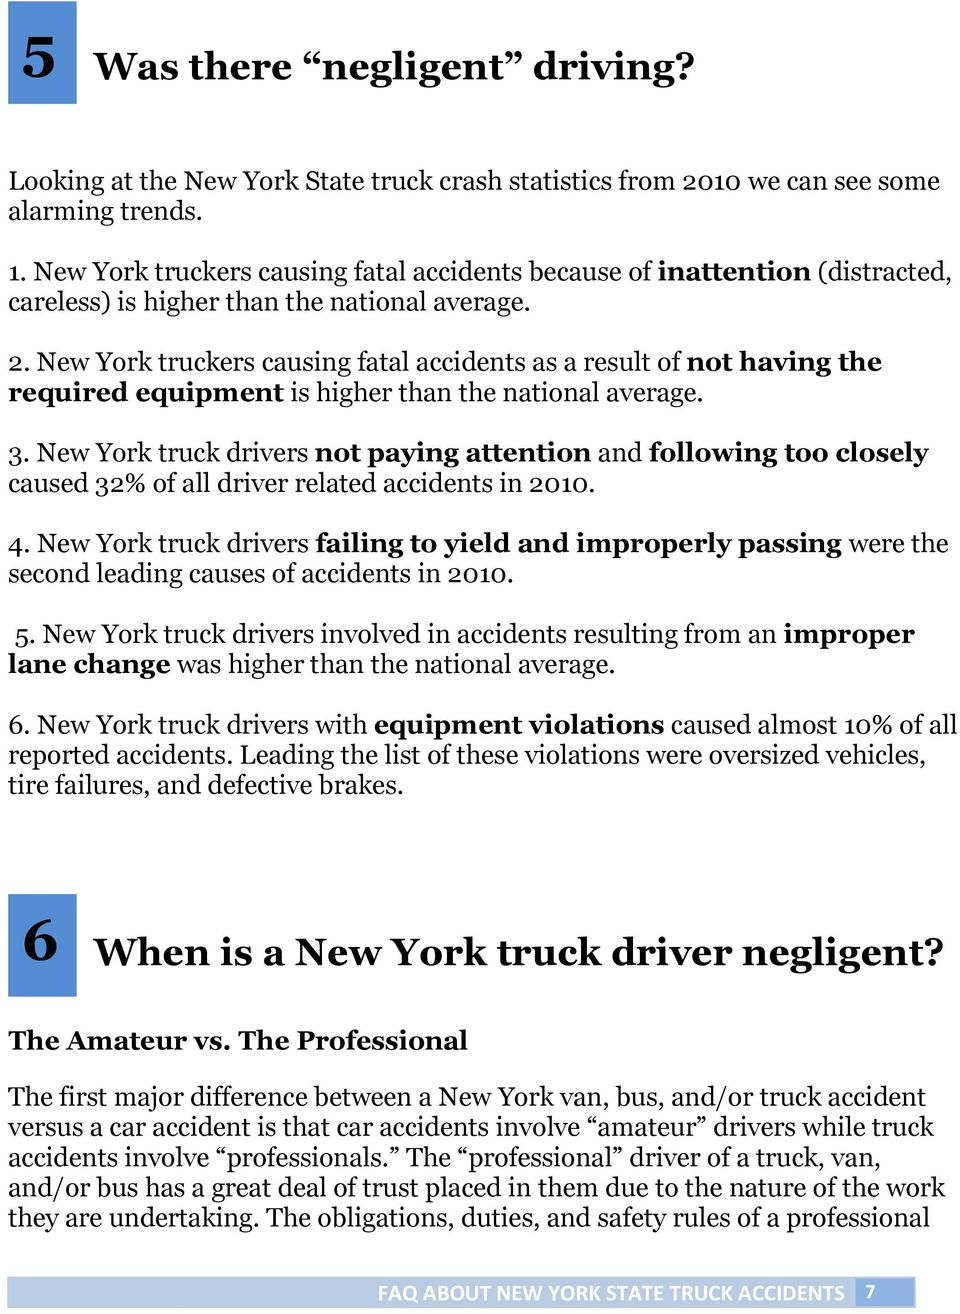 New York truckers causing fatal accidents as a result of not having the required equipment is higher than the national average. 3.